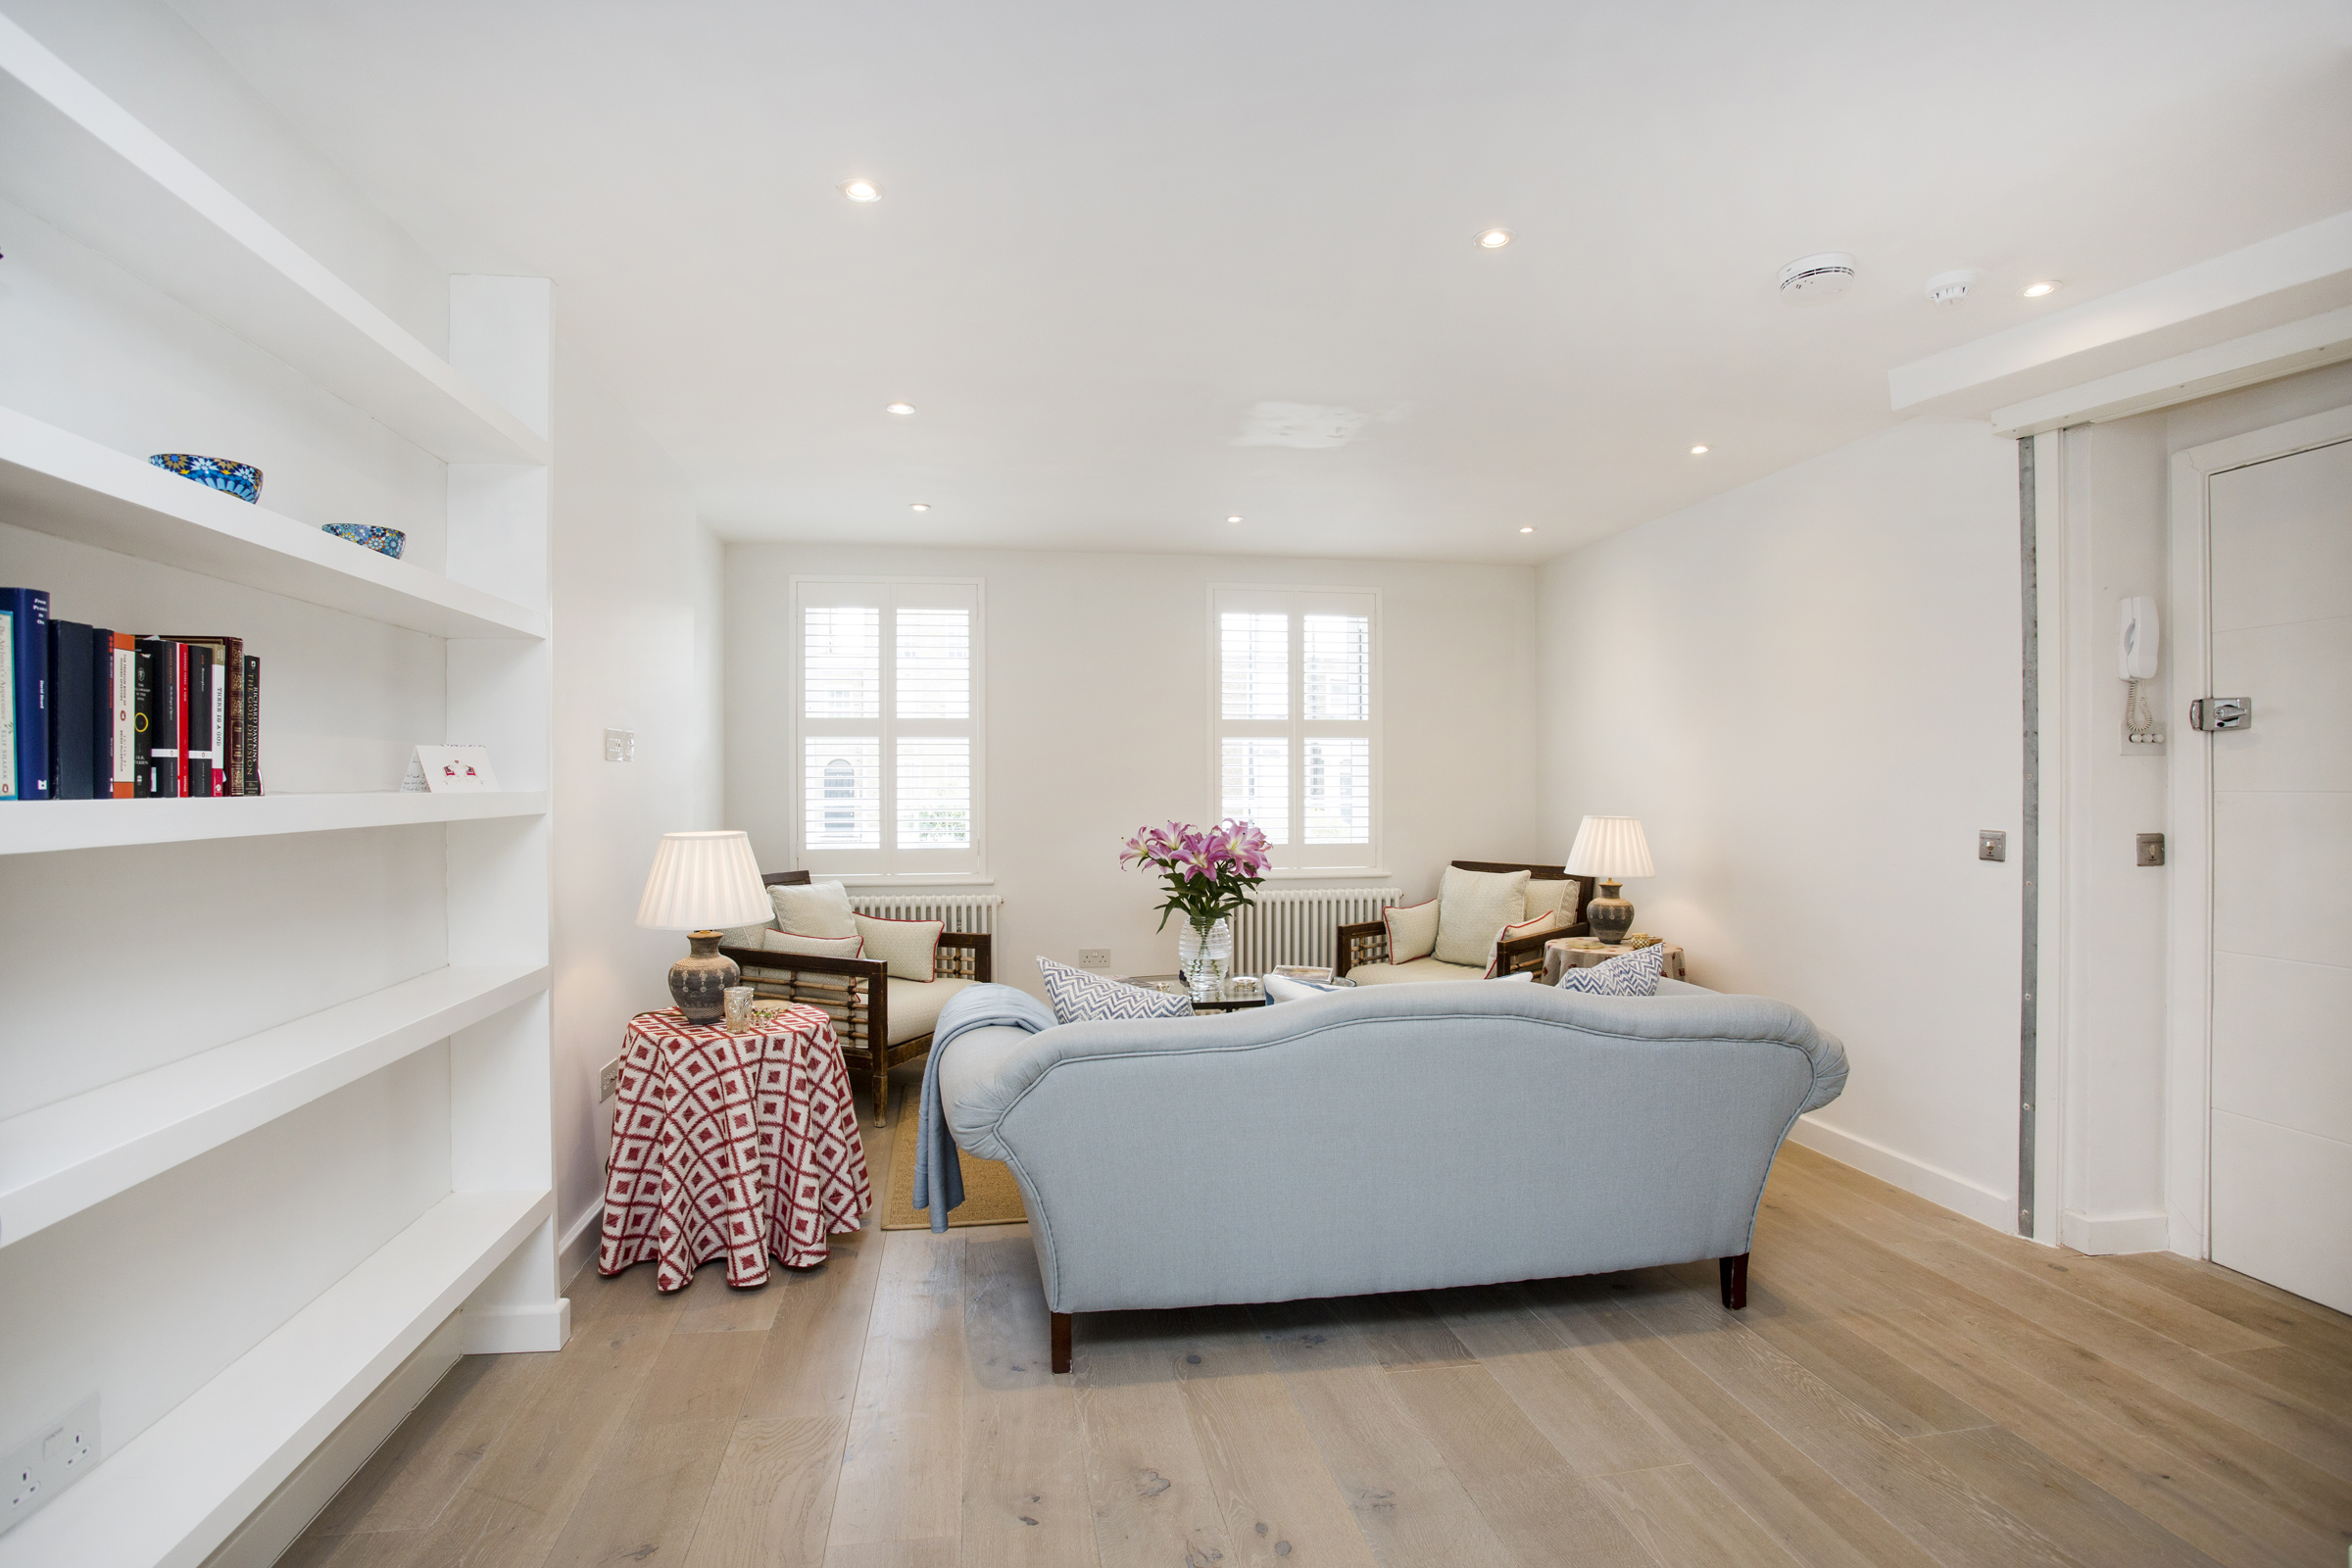 Contemporary and bright 3 bedroom house in a residential area of Clapham